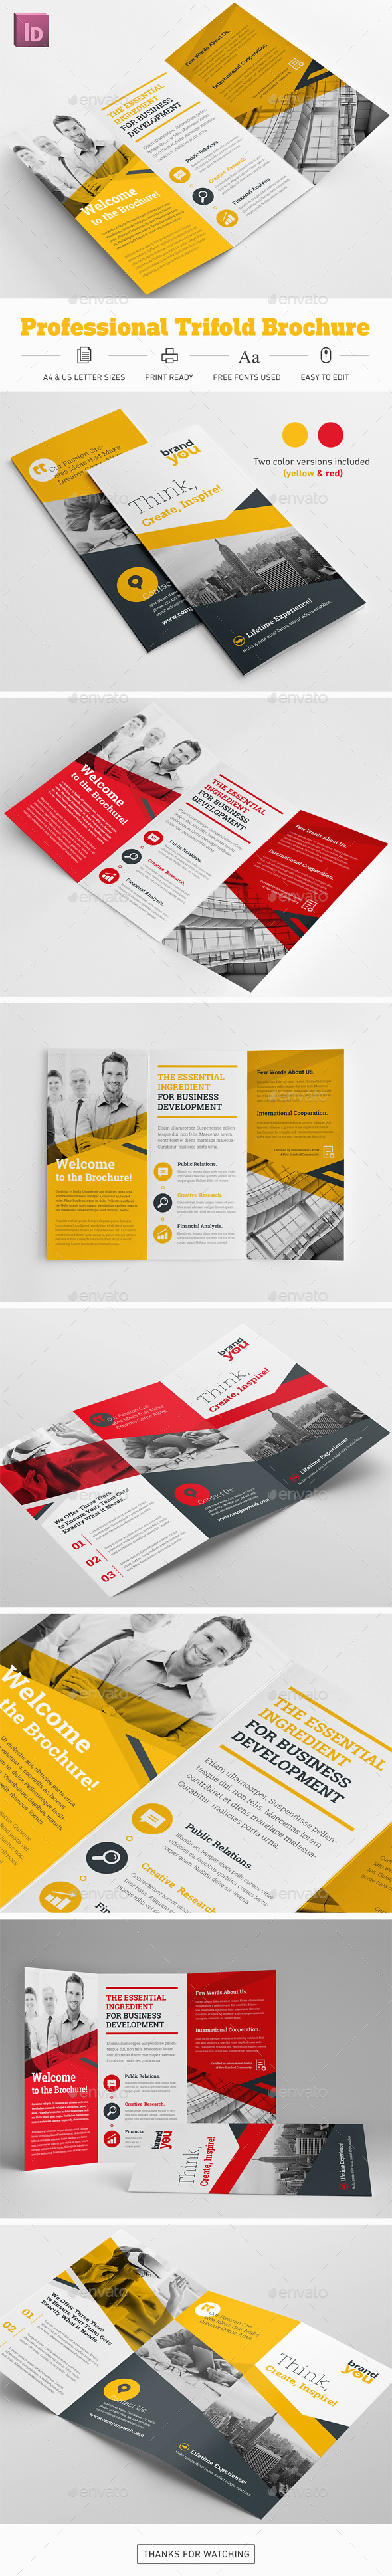 Professional Trifold Brochure - Corporate Brochures